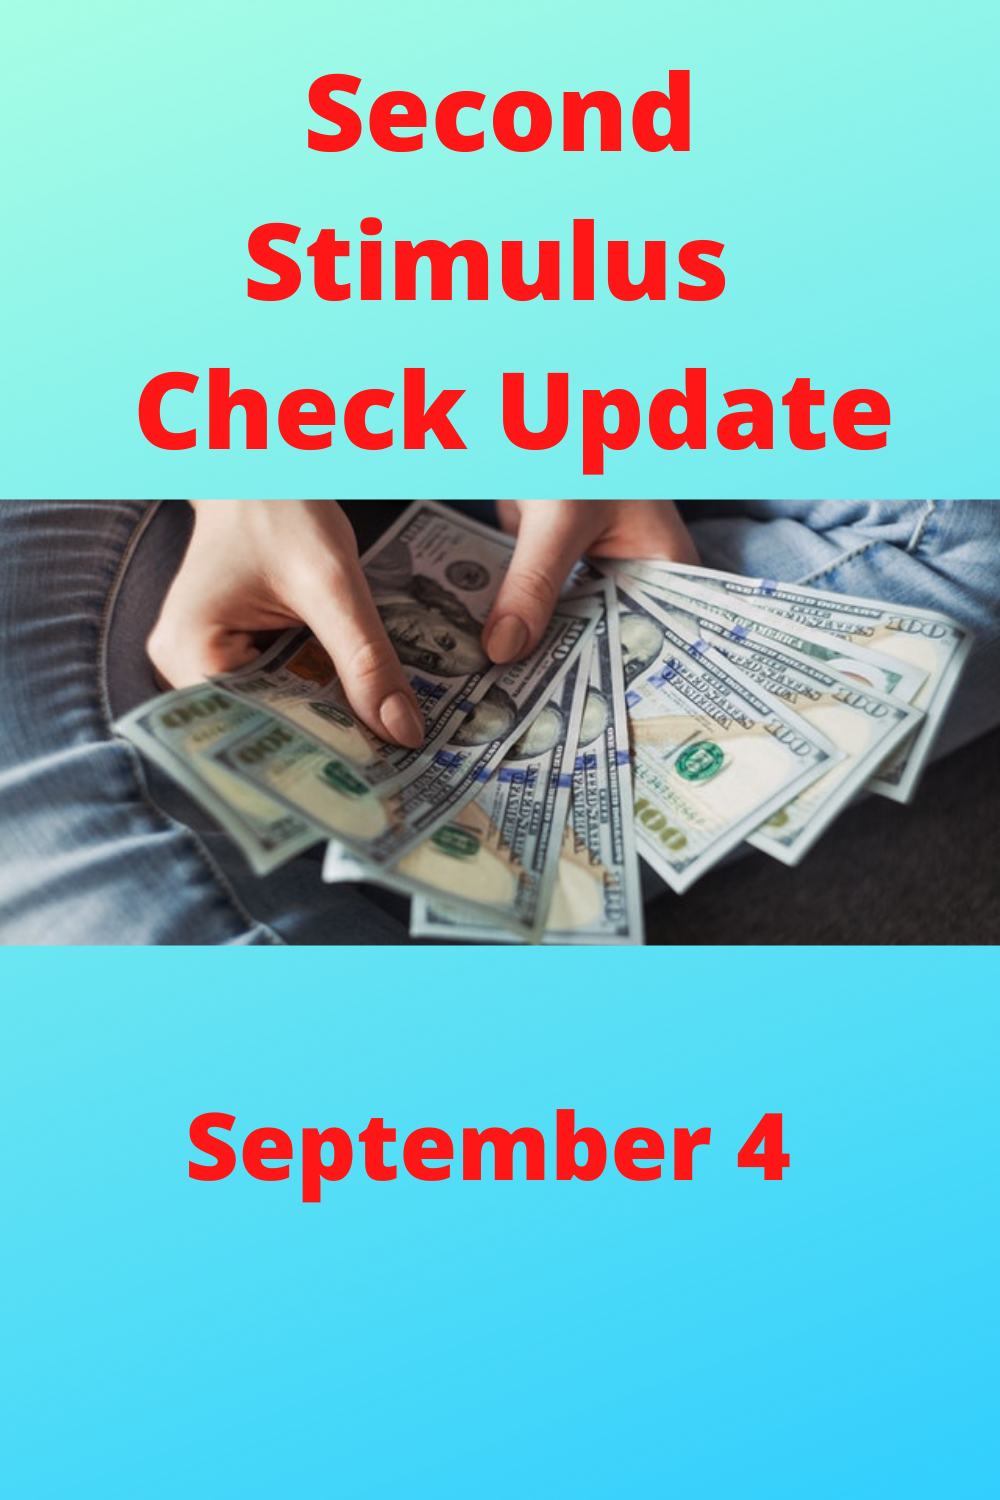 The update what's going on the Second Stimulus Check in